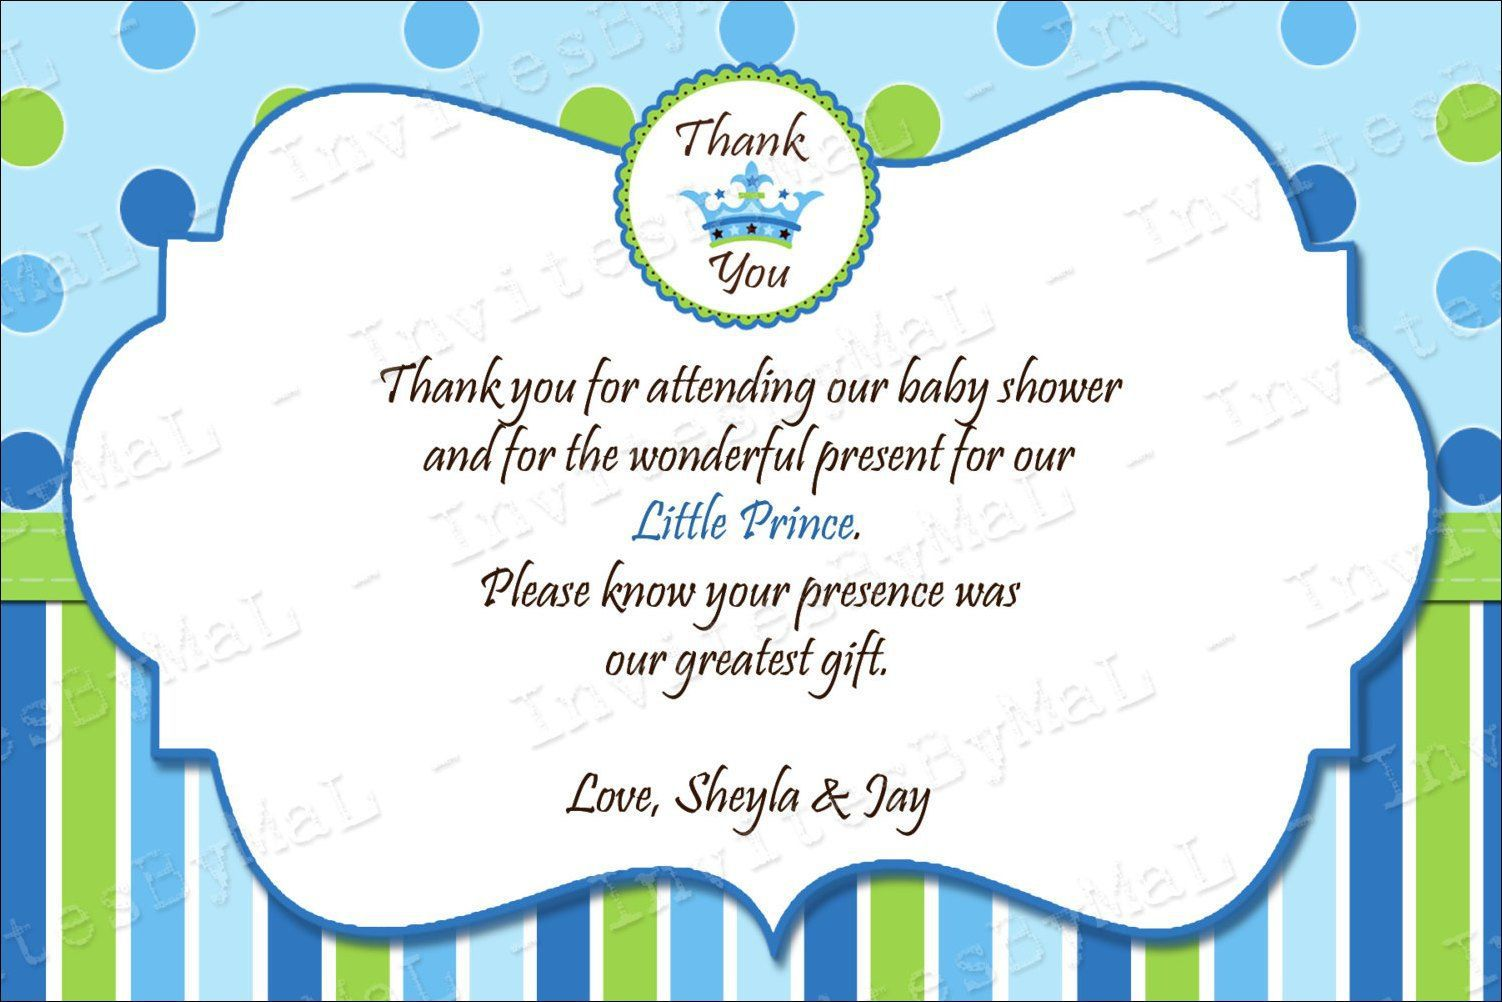 008 Rare Thank You Note Wording Baby Shower Photo  For Hosting CardFull